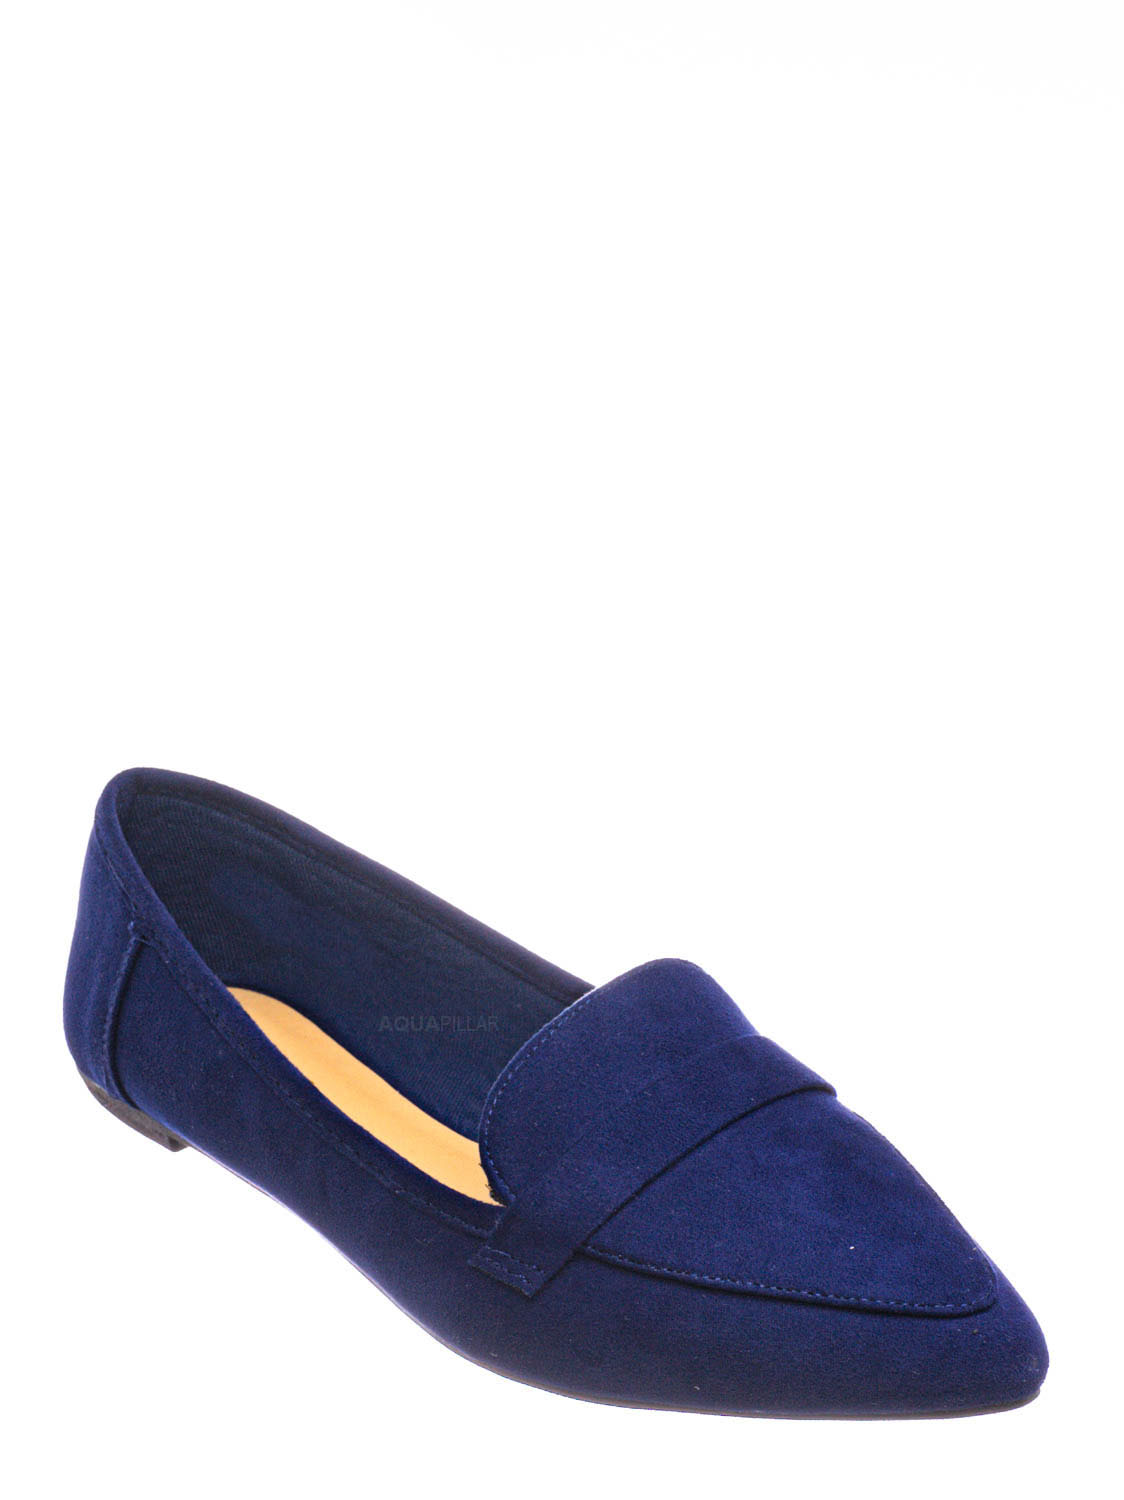 run small 19463 Women Faux Suede Pointy Toe Bow Slip On Flat Loafer